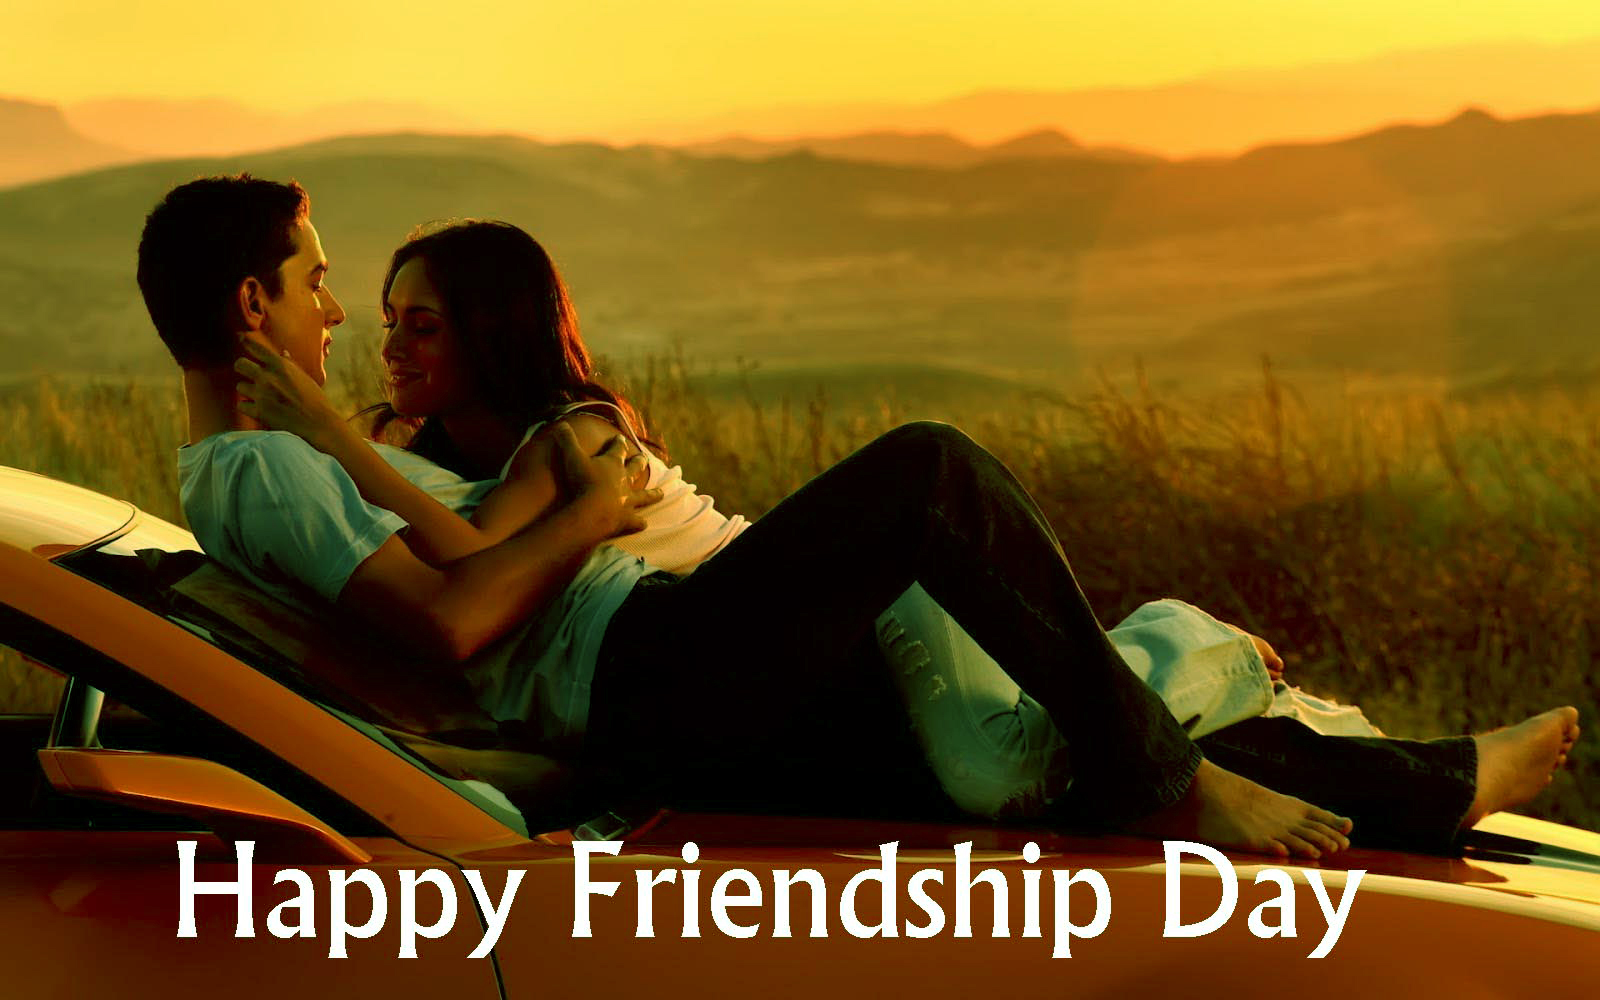 Friendship Day Pictures free Download